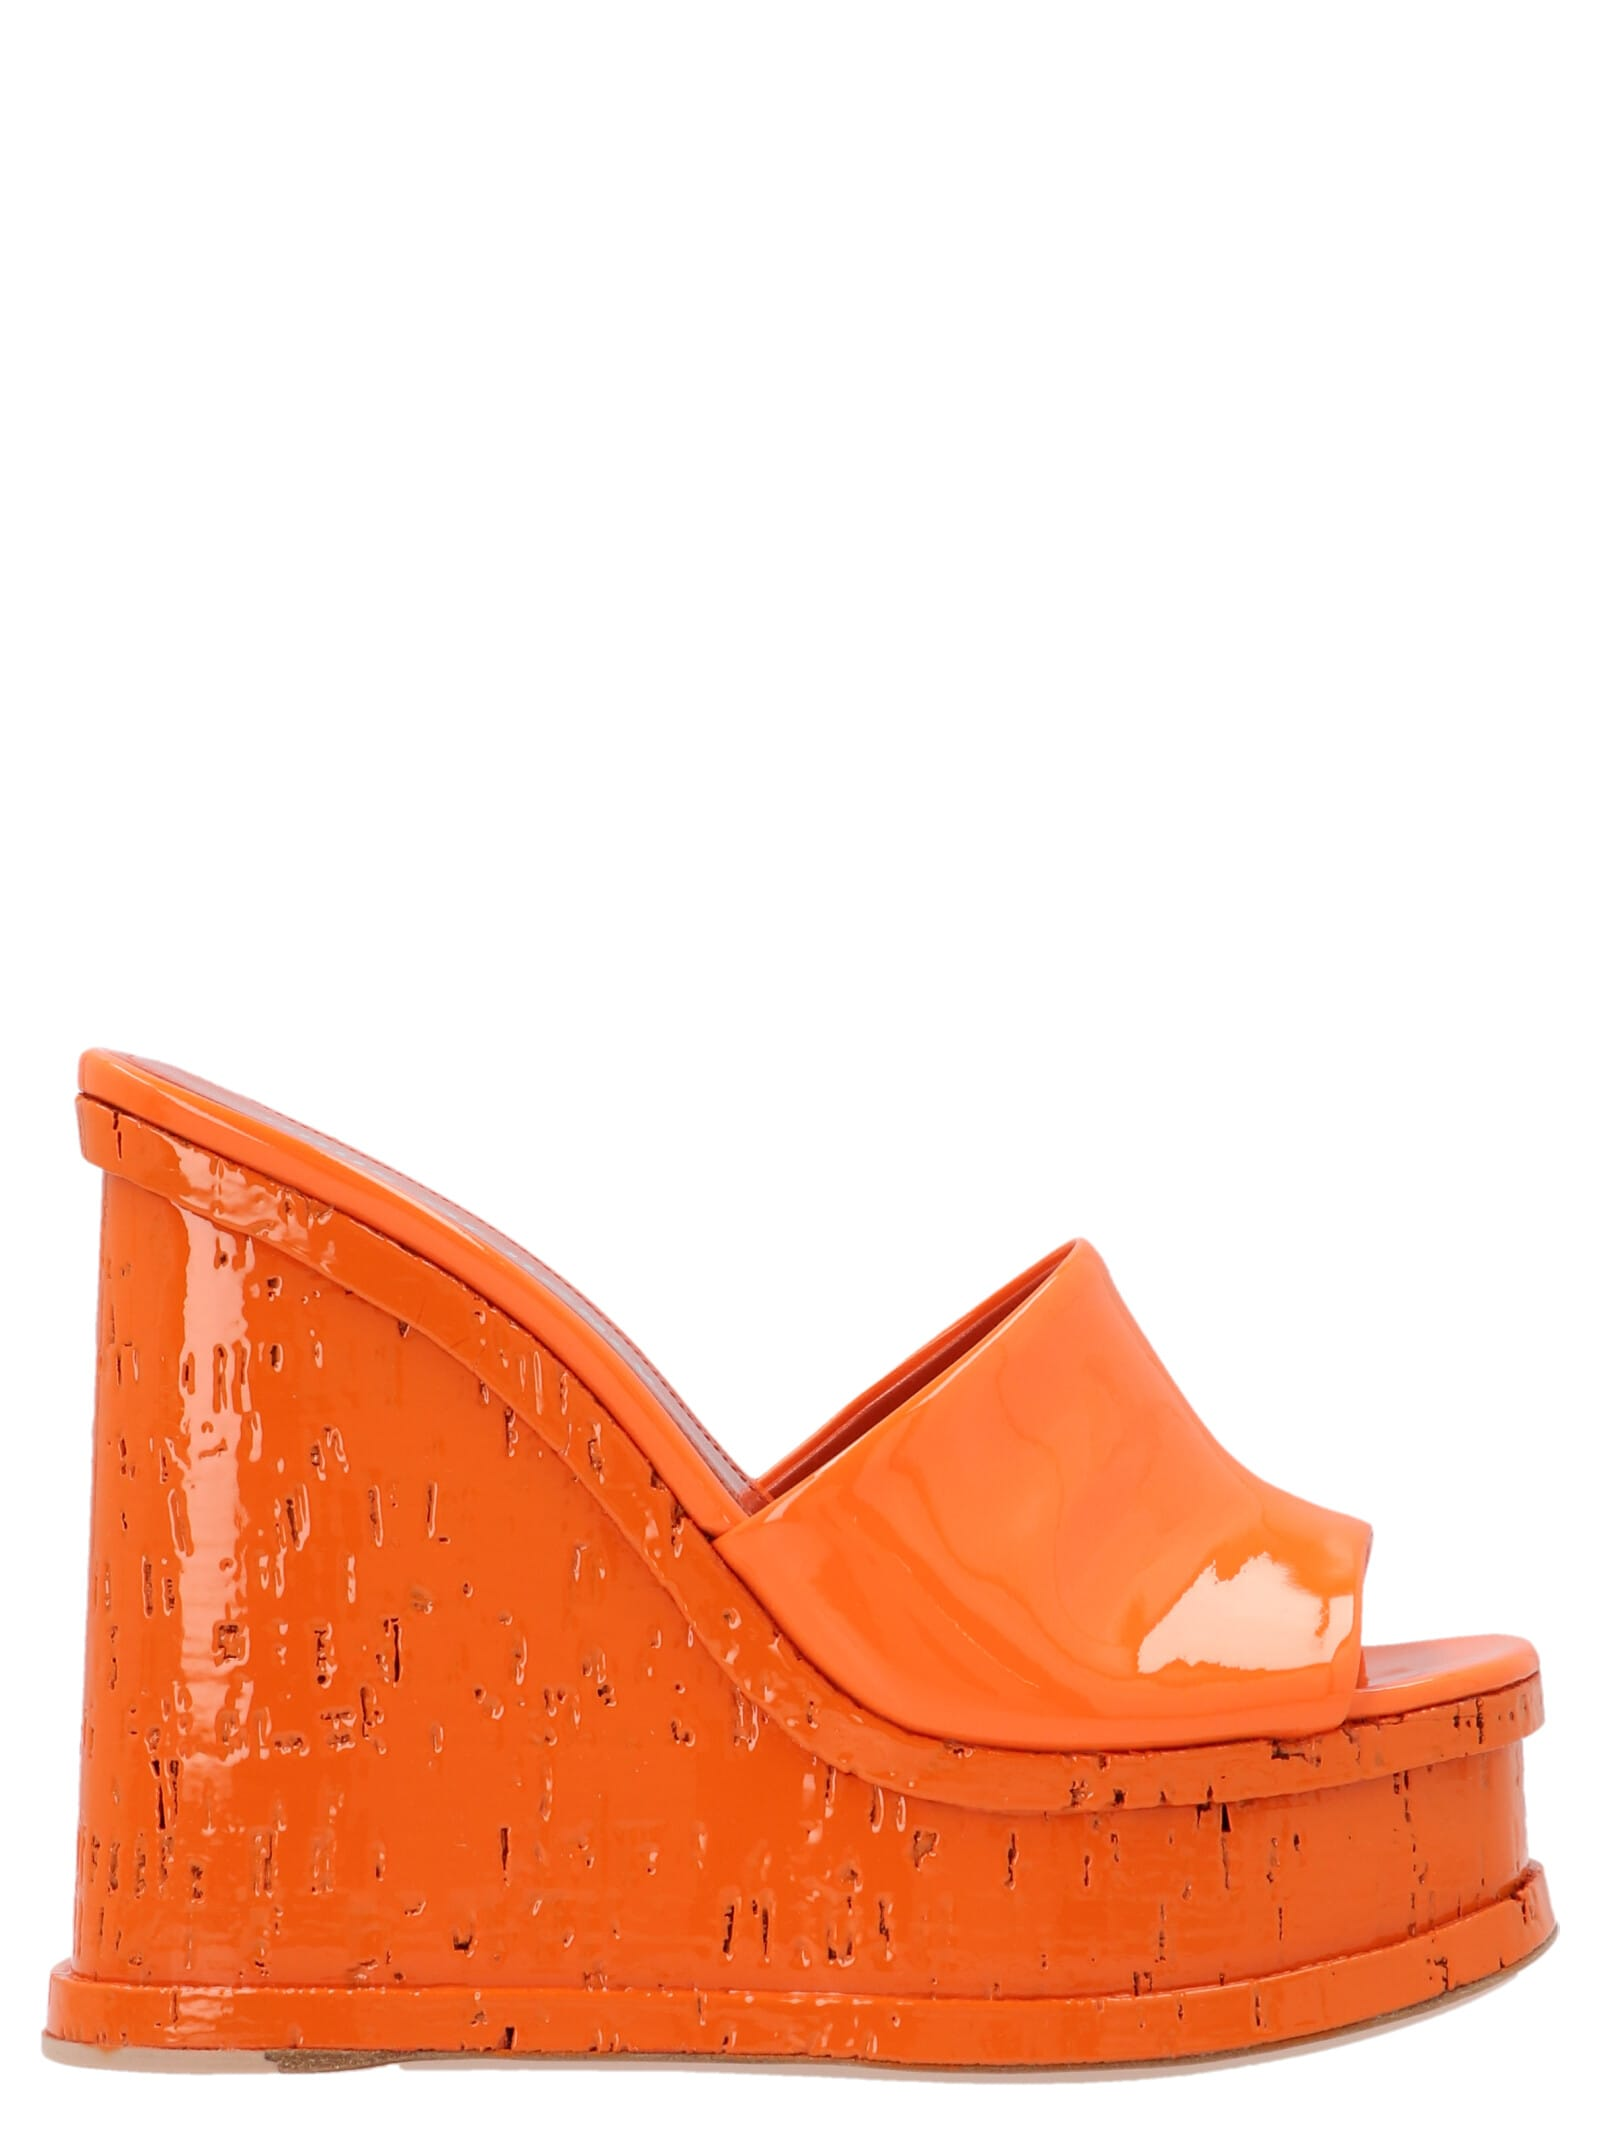 laquer Doll Wedges